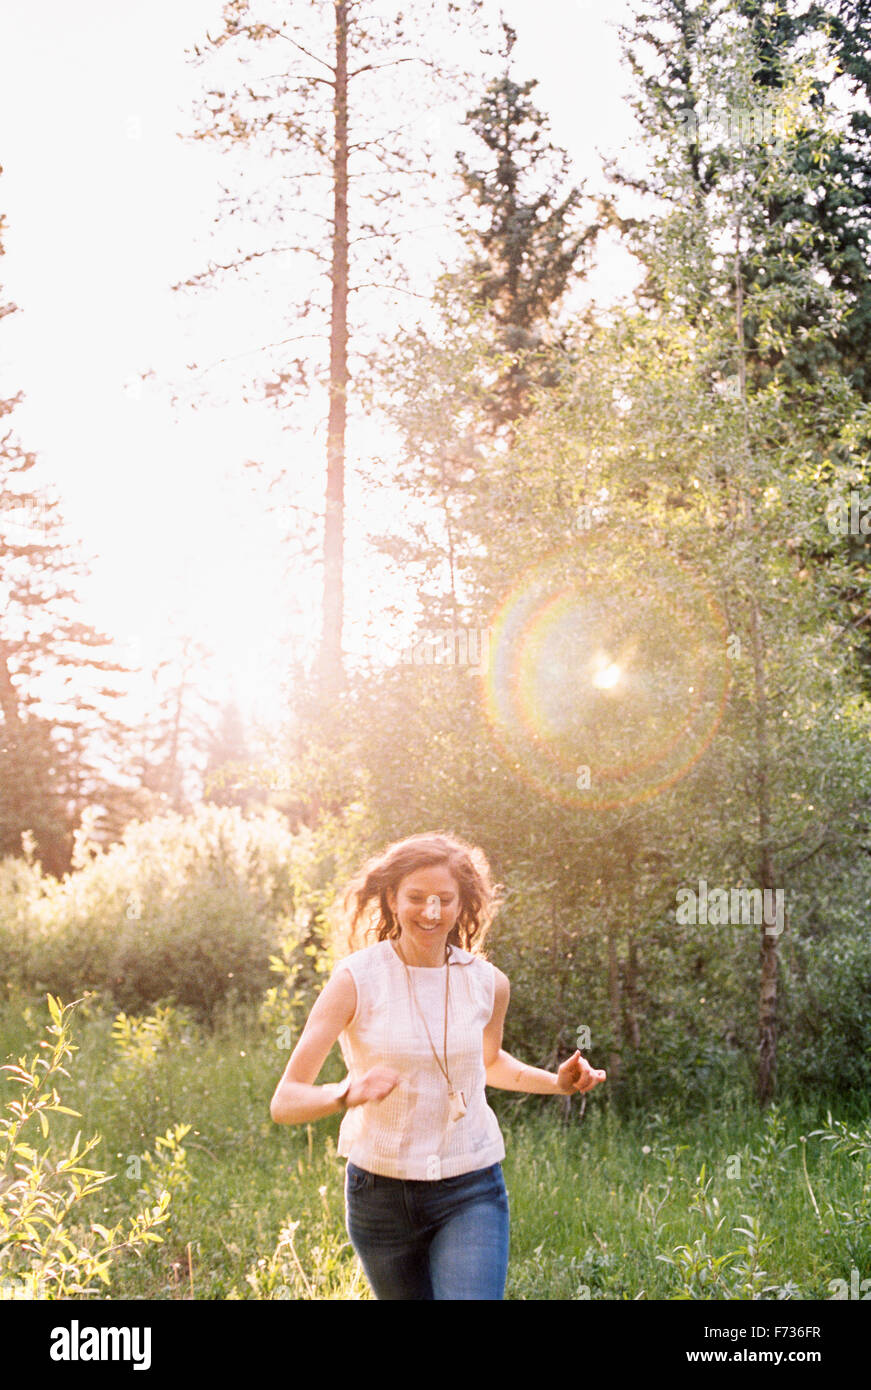 Smiling woman running through a sunlit forest. - Stock Image